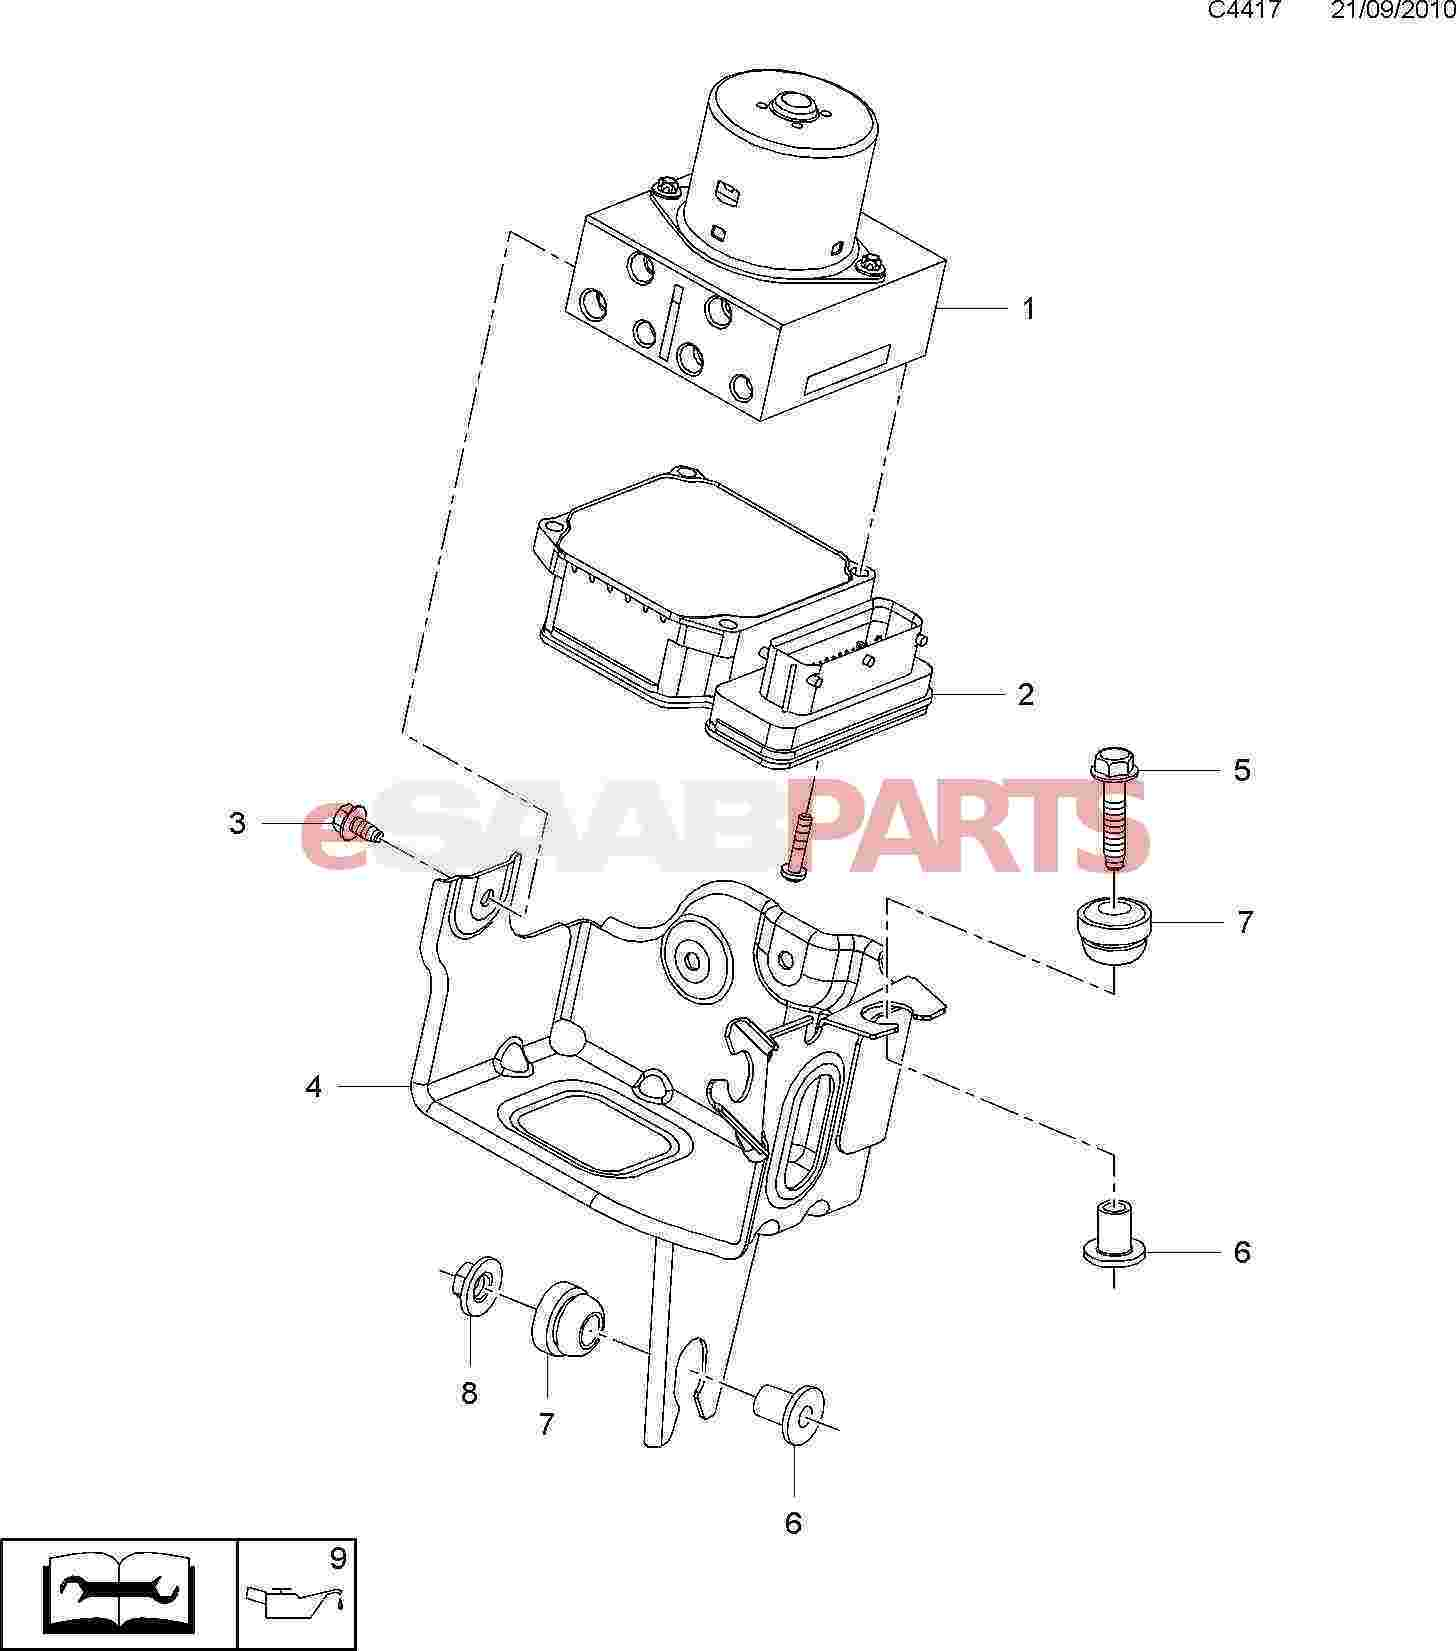 34940 Relais De Ventilateur Basse Vitesse Pour Chrysler Pt Cruiser 22l Crd 4727370aa further 2000 Bmw 540i Engine Diagram furthermore Saab 9000 Wiring Diagram besides Midland Abs Wiring likewise Sis. on saab 9 3 abs module